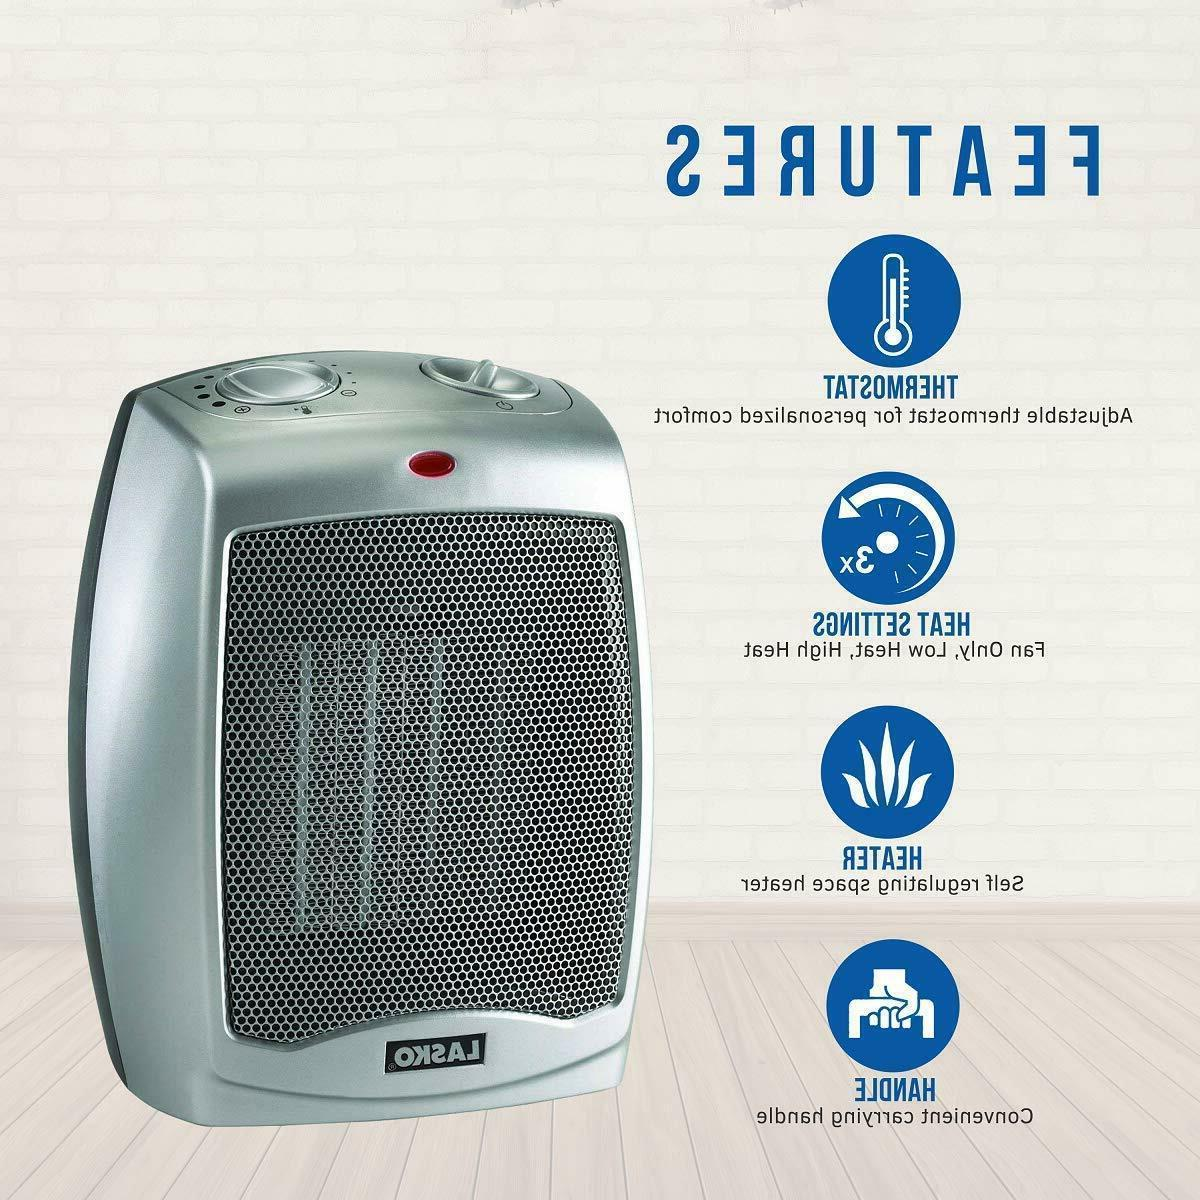 Ceramic Portable Space 754200 Heater with Adjustable Thermos